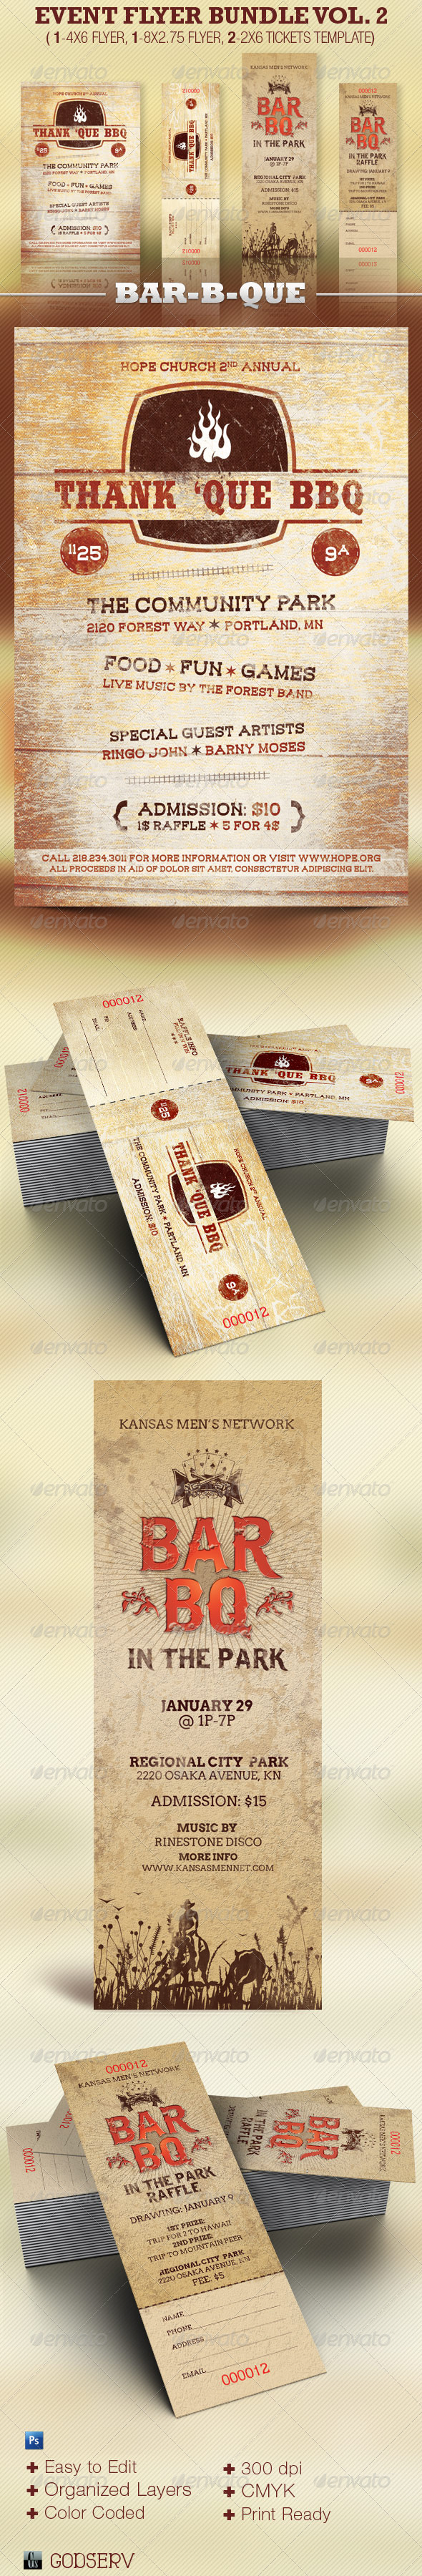 Barbecue Flyer Plus Ticket Template Bundle Vol 2 - Miscellaneous Events